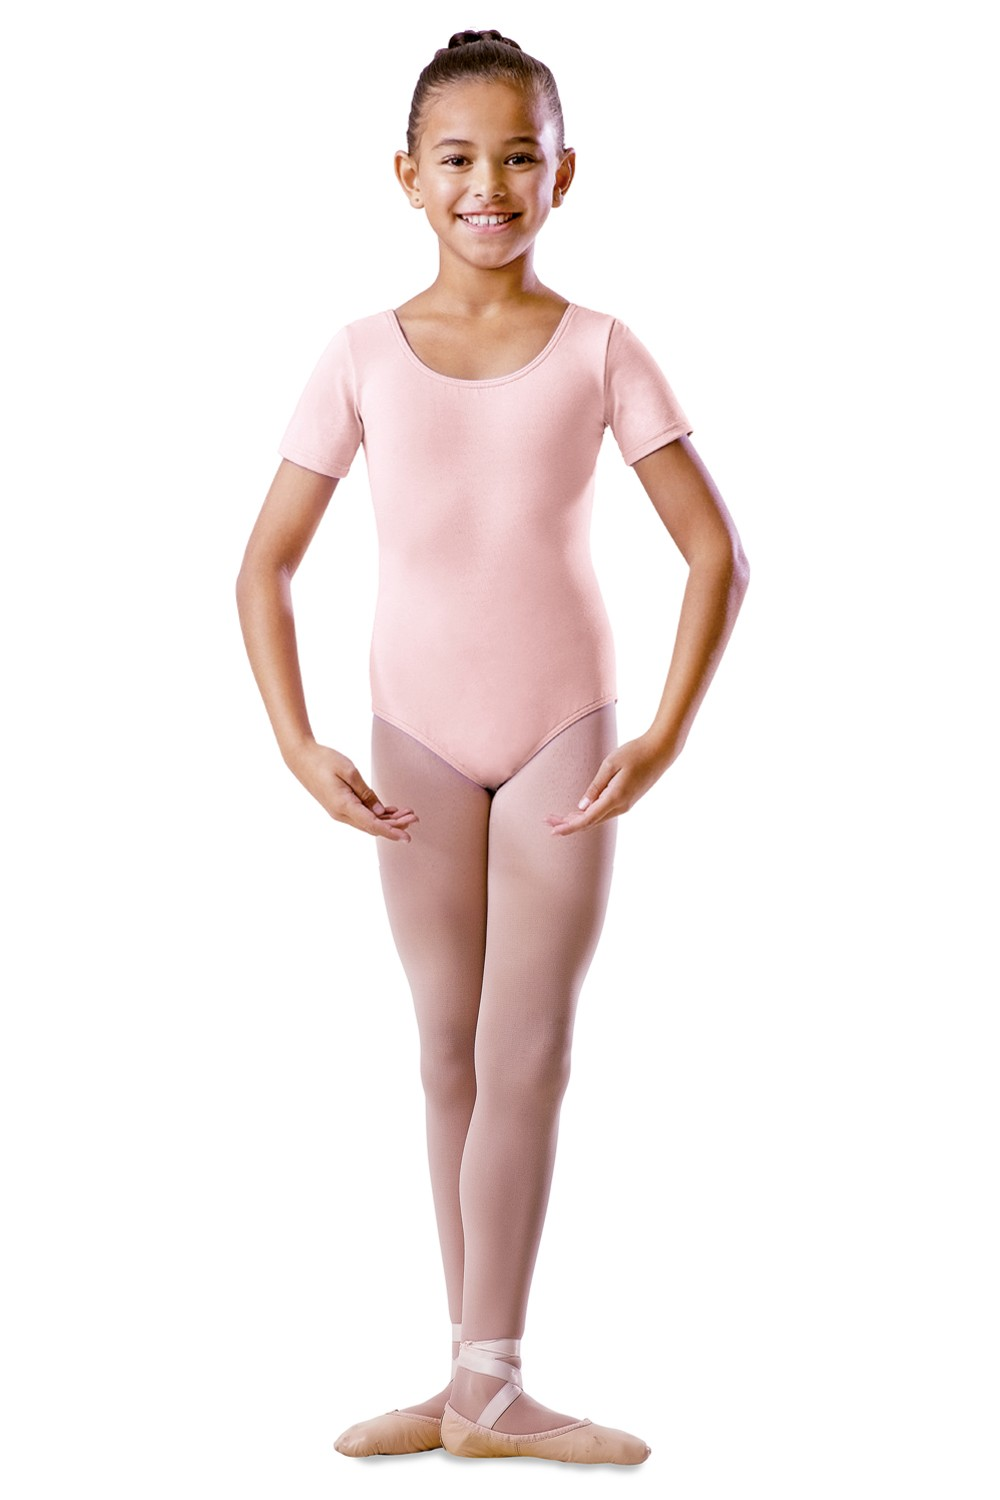 Childrens Round Neck Short Sleeve Leotard Children's Dance Uniforms